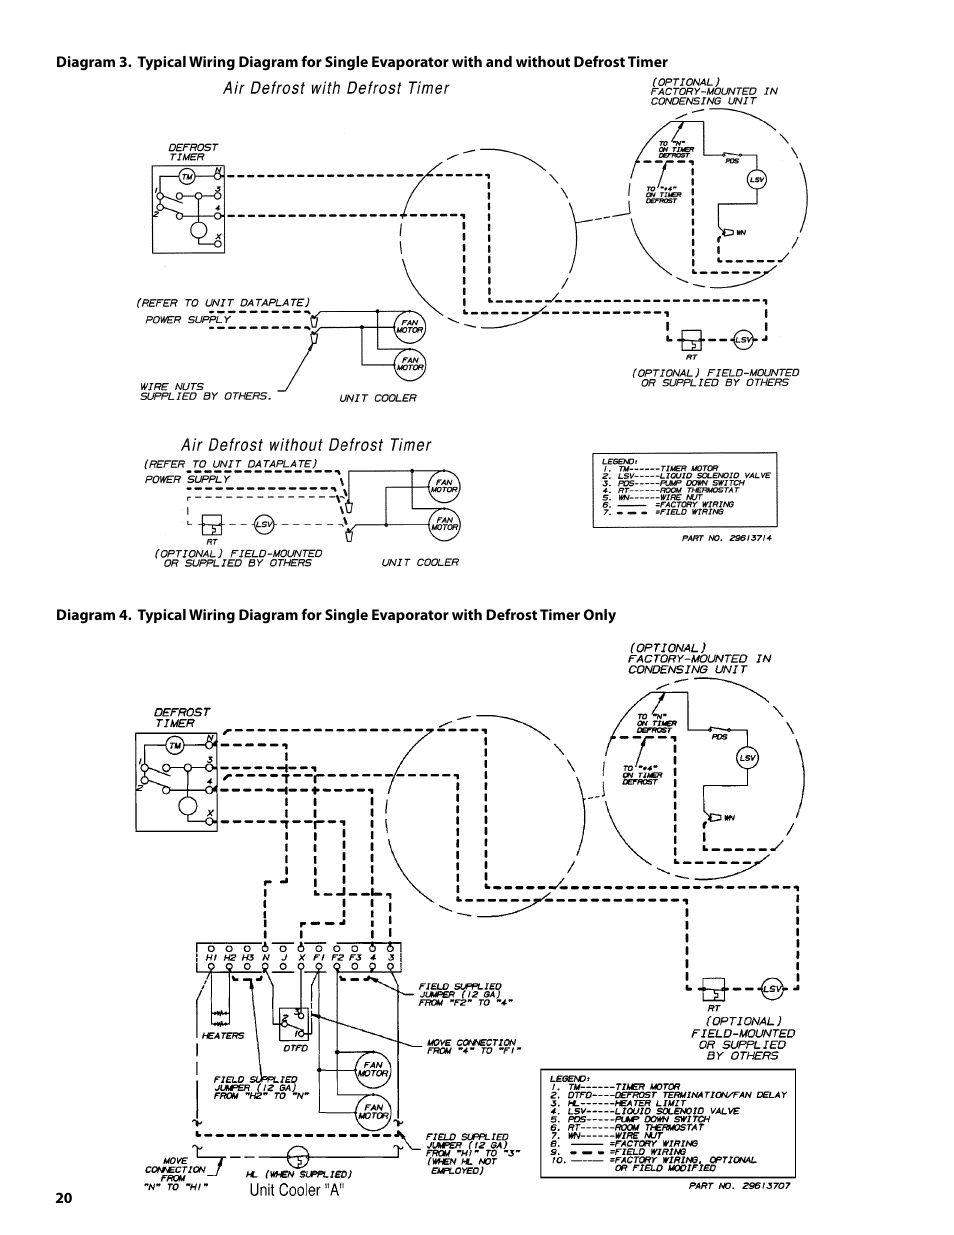 bohn walk in freezer wiring diagram copeland walk in cooler wiring diagram heatcraft refrigeration products condensing units h-im-cu ... #10